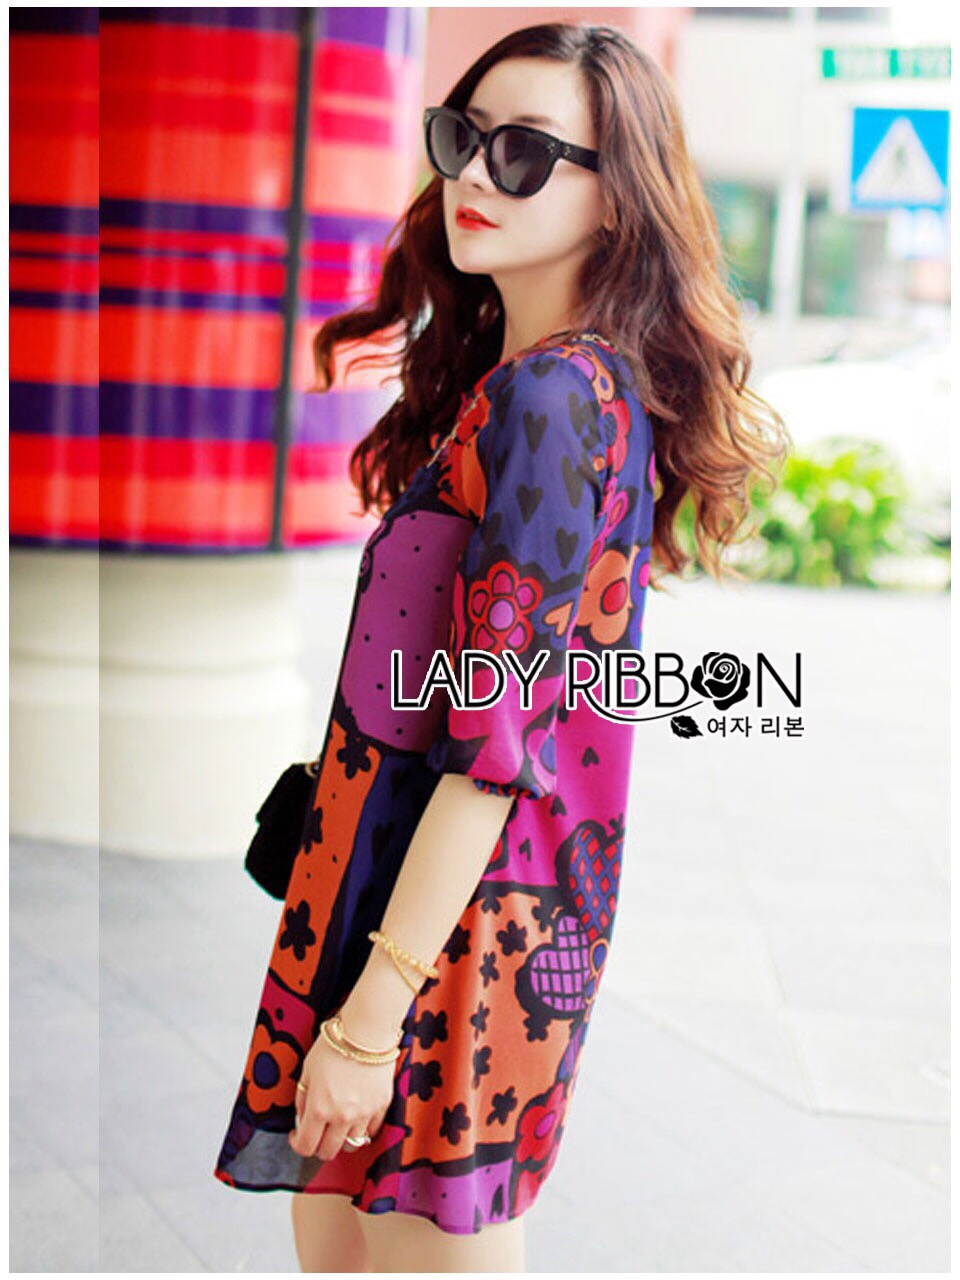 Lady Ribbon Korea Mini Dress LR12130616 &#x1F380 Lady Ribbon's Made &#x1F380 Lady Jennifer Summery Vivid Color Graphic Printed Mini Dress